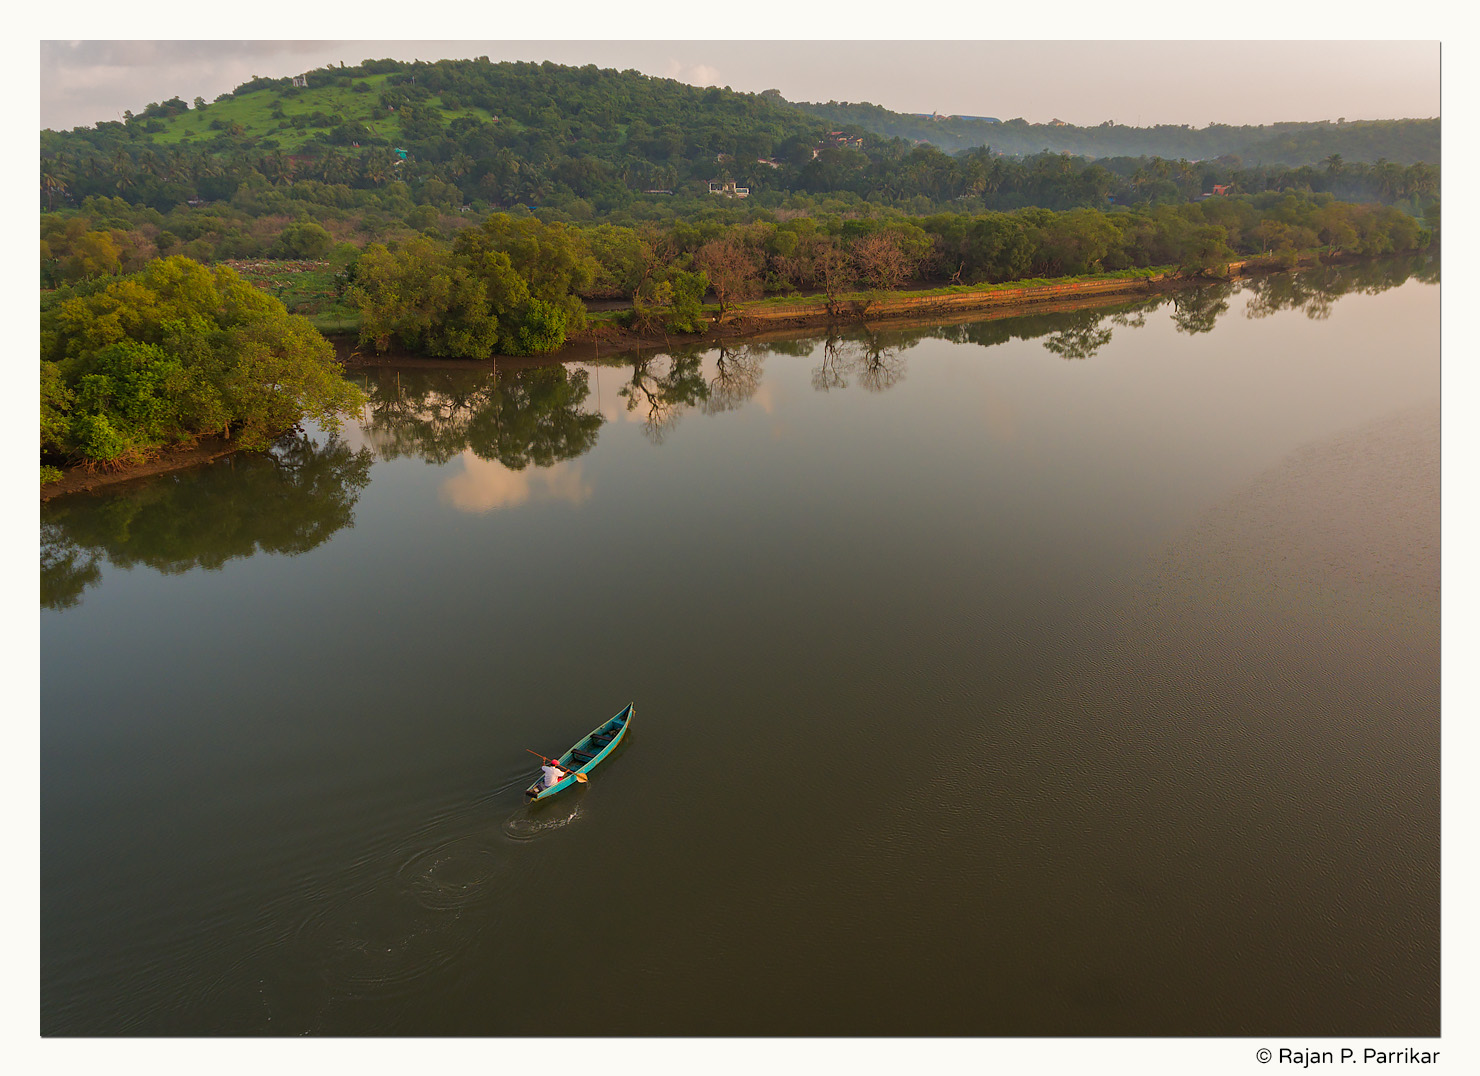 Boat in Nerul river, Goa